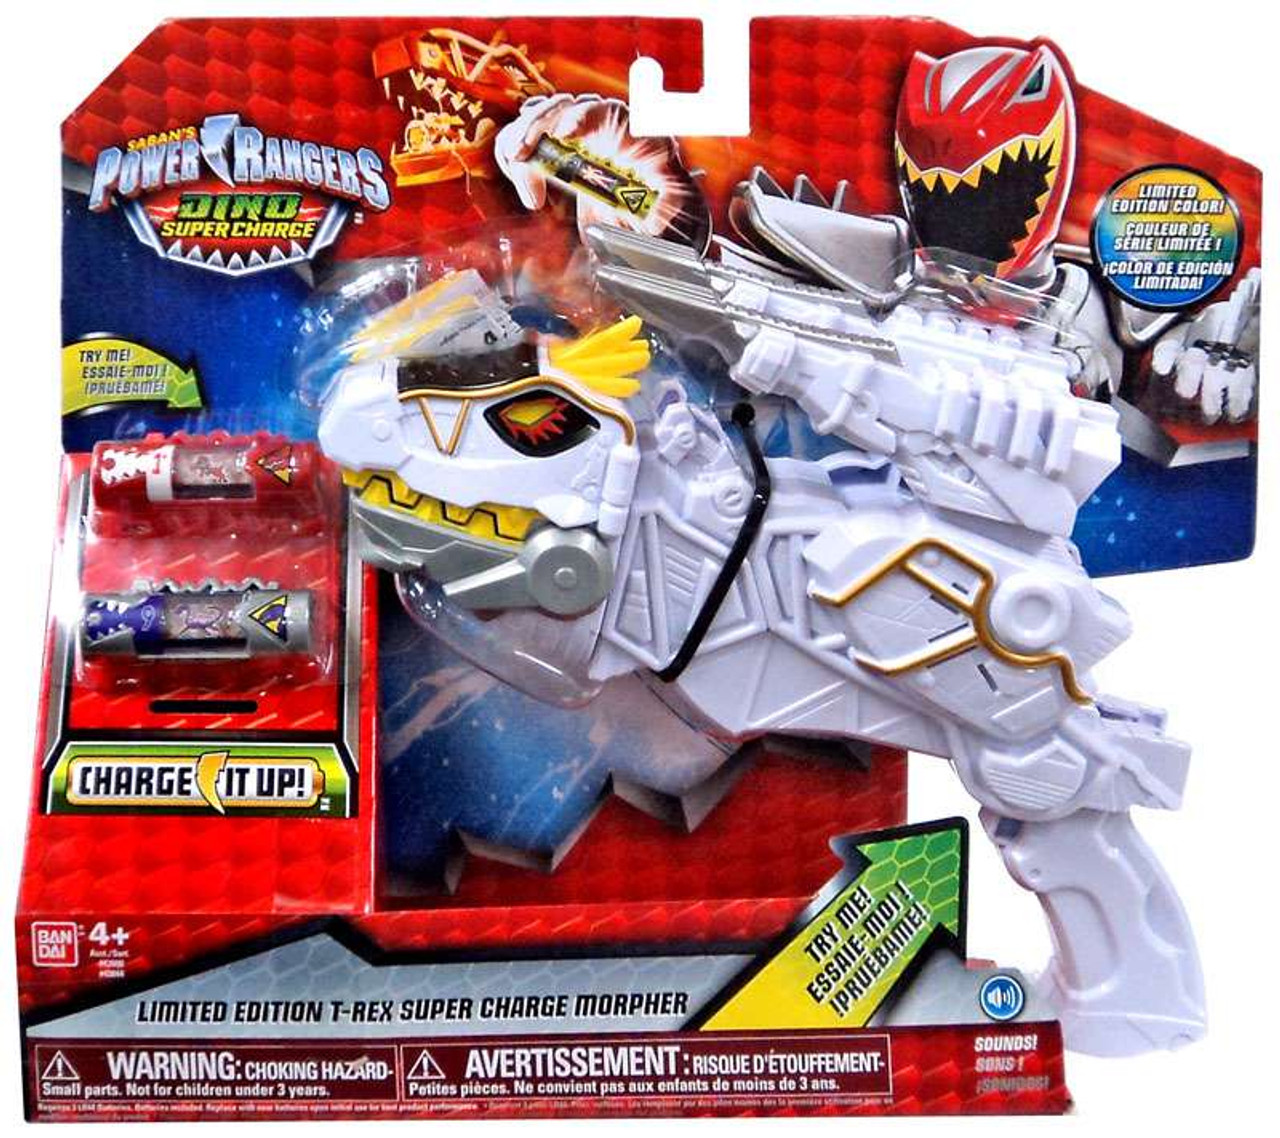 power rangers dino super charge t rex super charge morpher roleplay toy limited edition bandai america toywiz power rangers dino super charge t rex